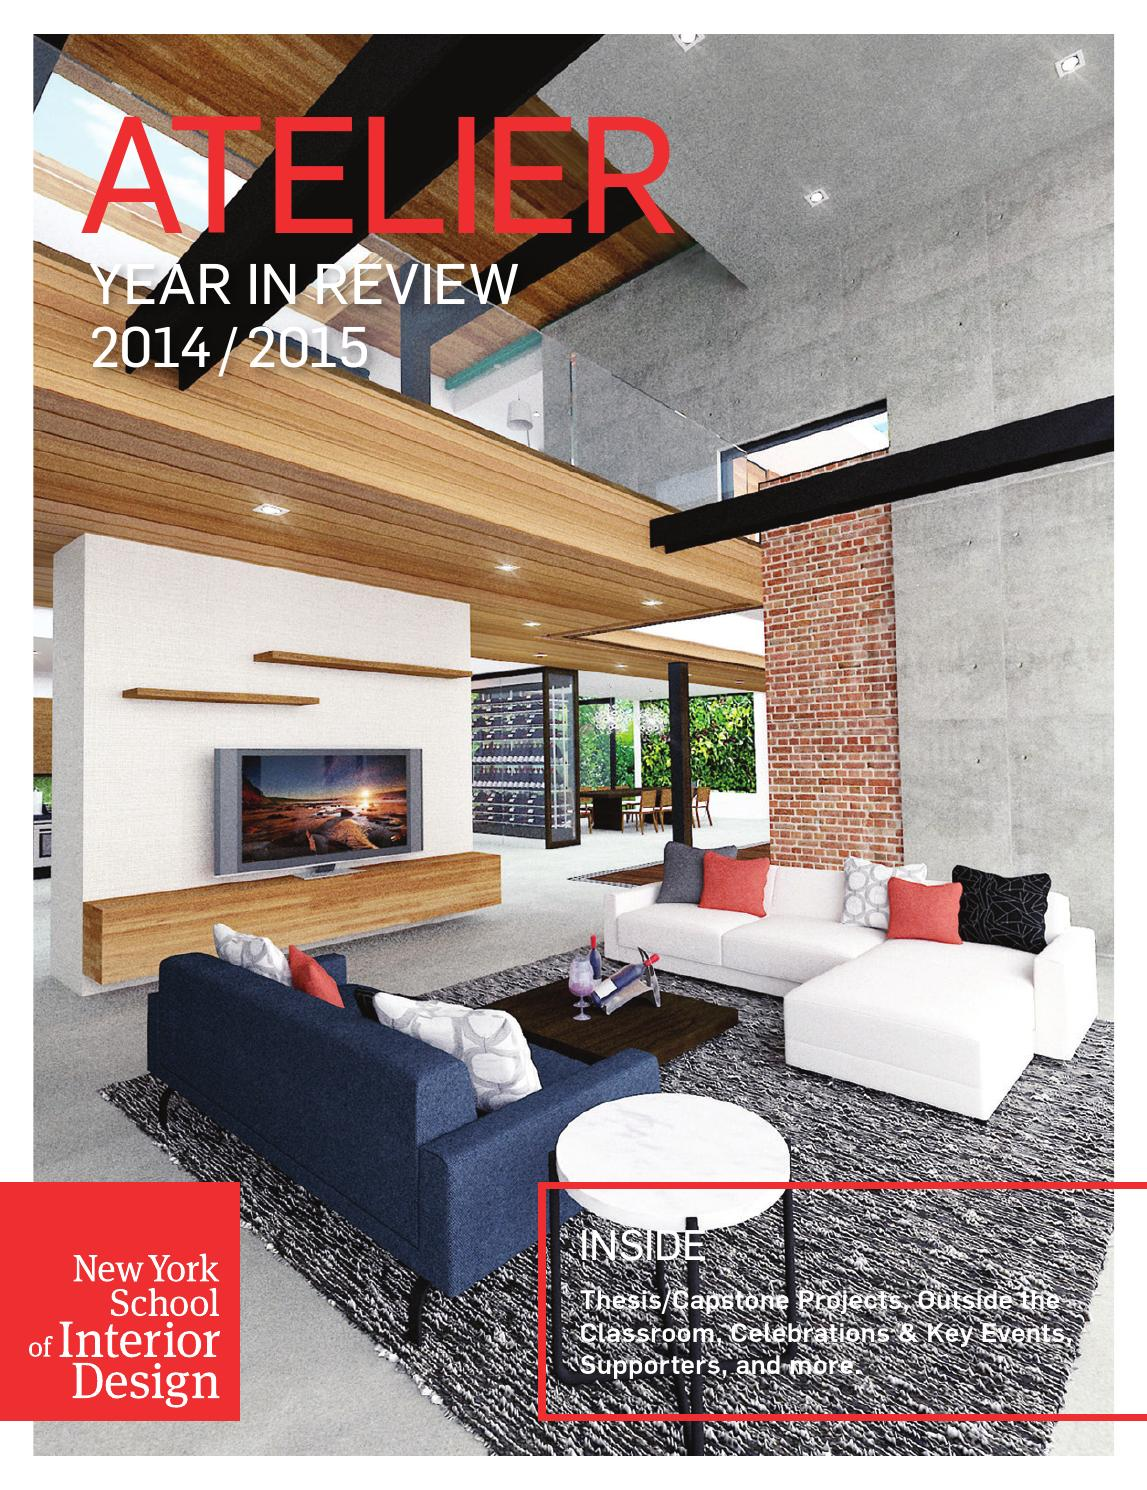 Atelier Year In Review 2017 By New York School Of Interior Design Issuu